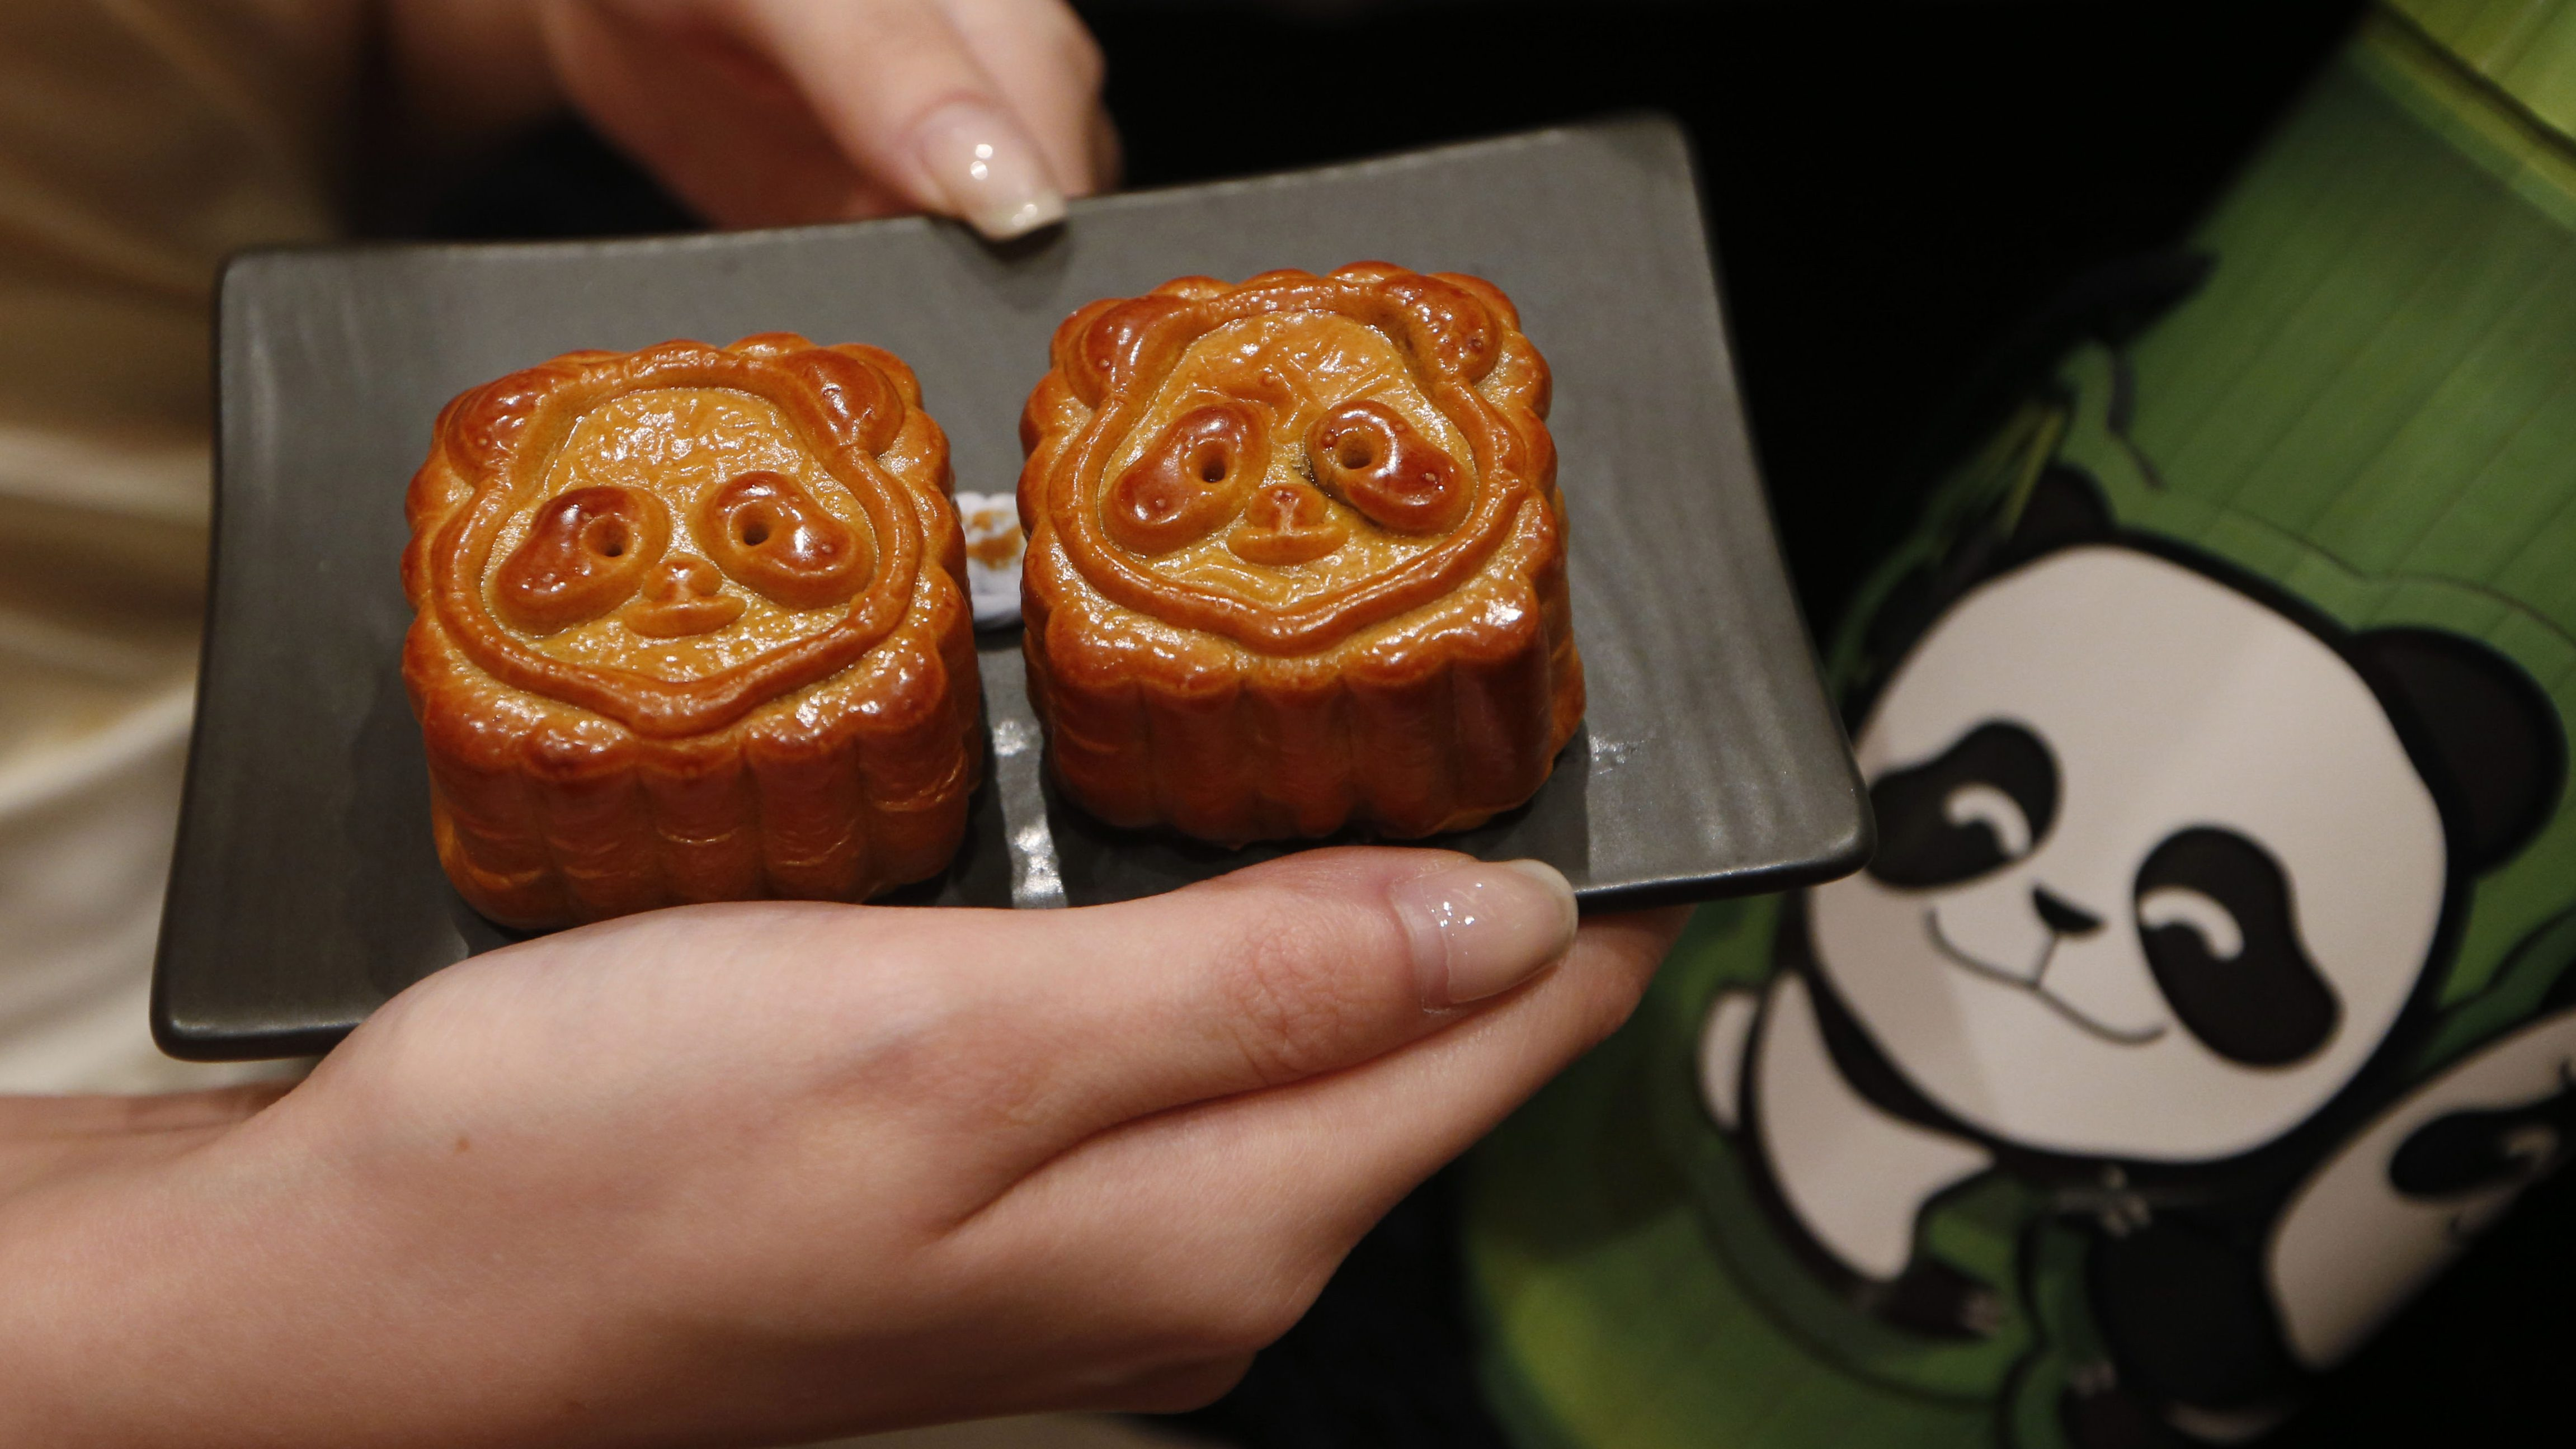 A staff member displays mooncakes glazed with Panda faces part of the celebration of the upcoming Mid-Autumn festival during a media preview of the Food, Tea and Chinese Medicine Fairs in Hong Kong, Wednesday Aug. 1, 2012. More than 1,400 exhibitors from all over the world are expected to participate in the fairs. (AP Photo/Kin Cheung)